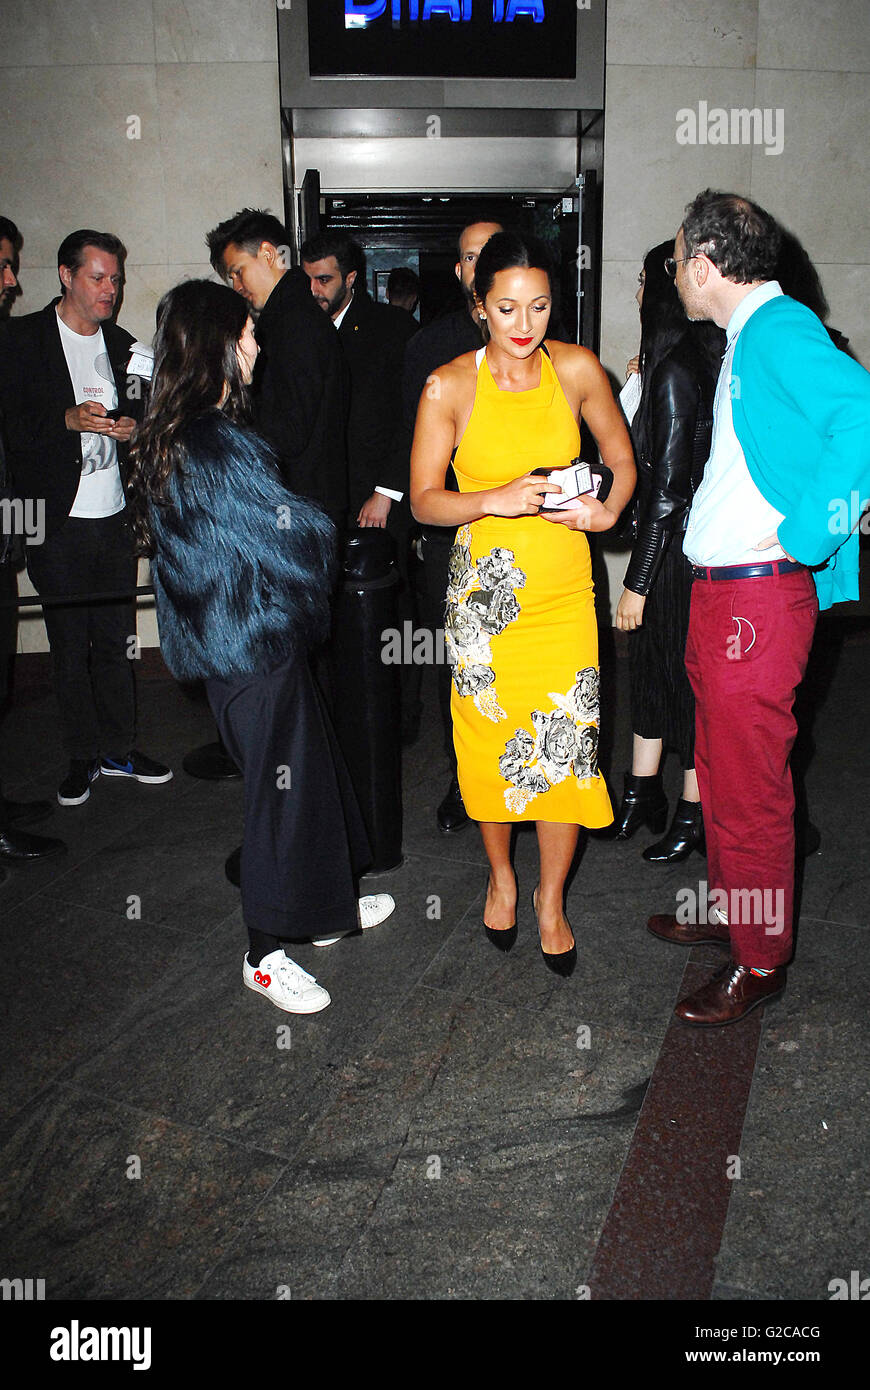 Models attend the 7th Man magazine launch at Drama's club in London UK - Stock Image